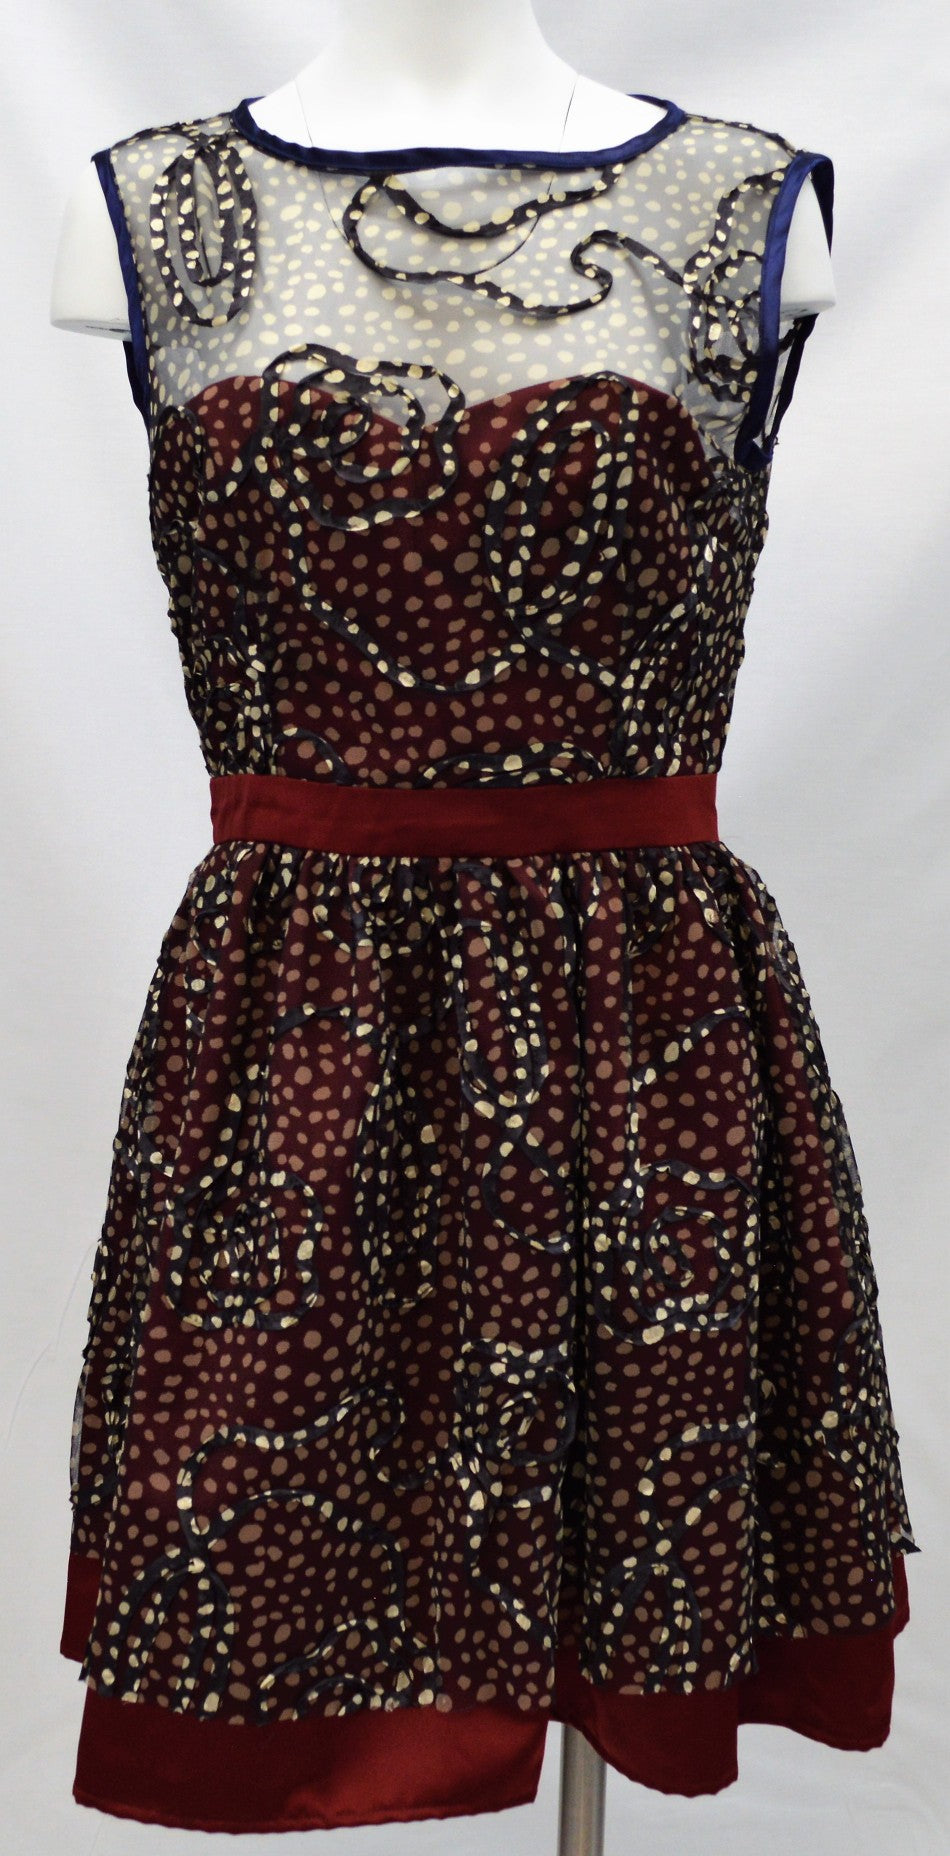 Sheer Dotted Dress